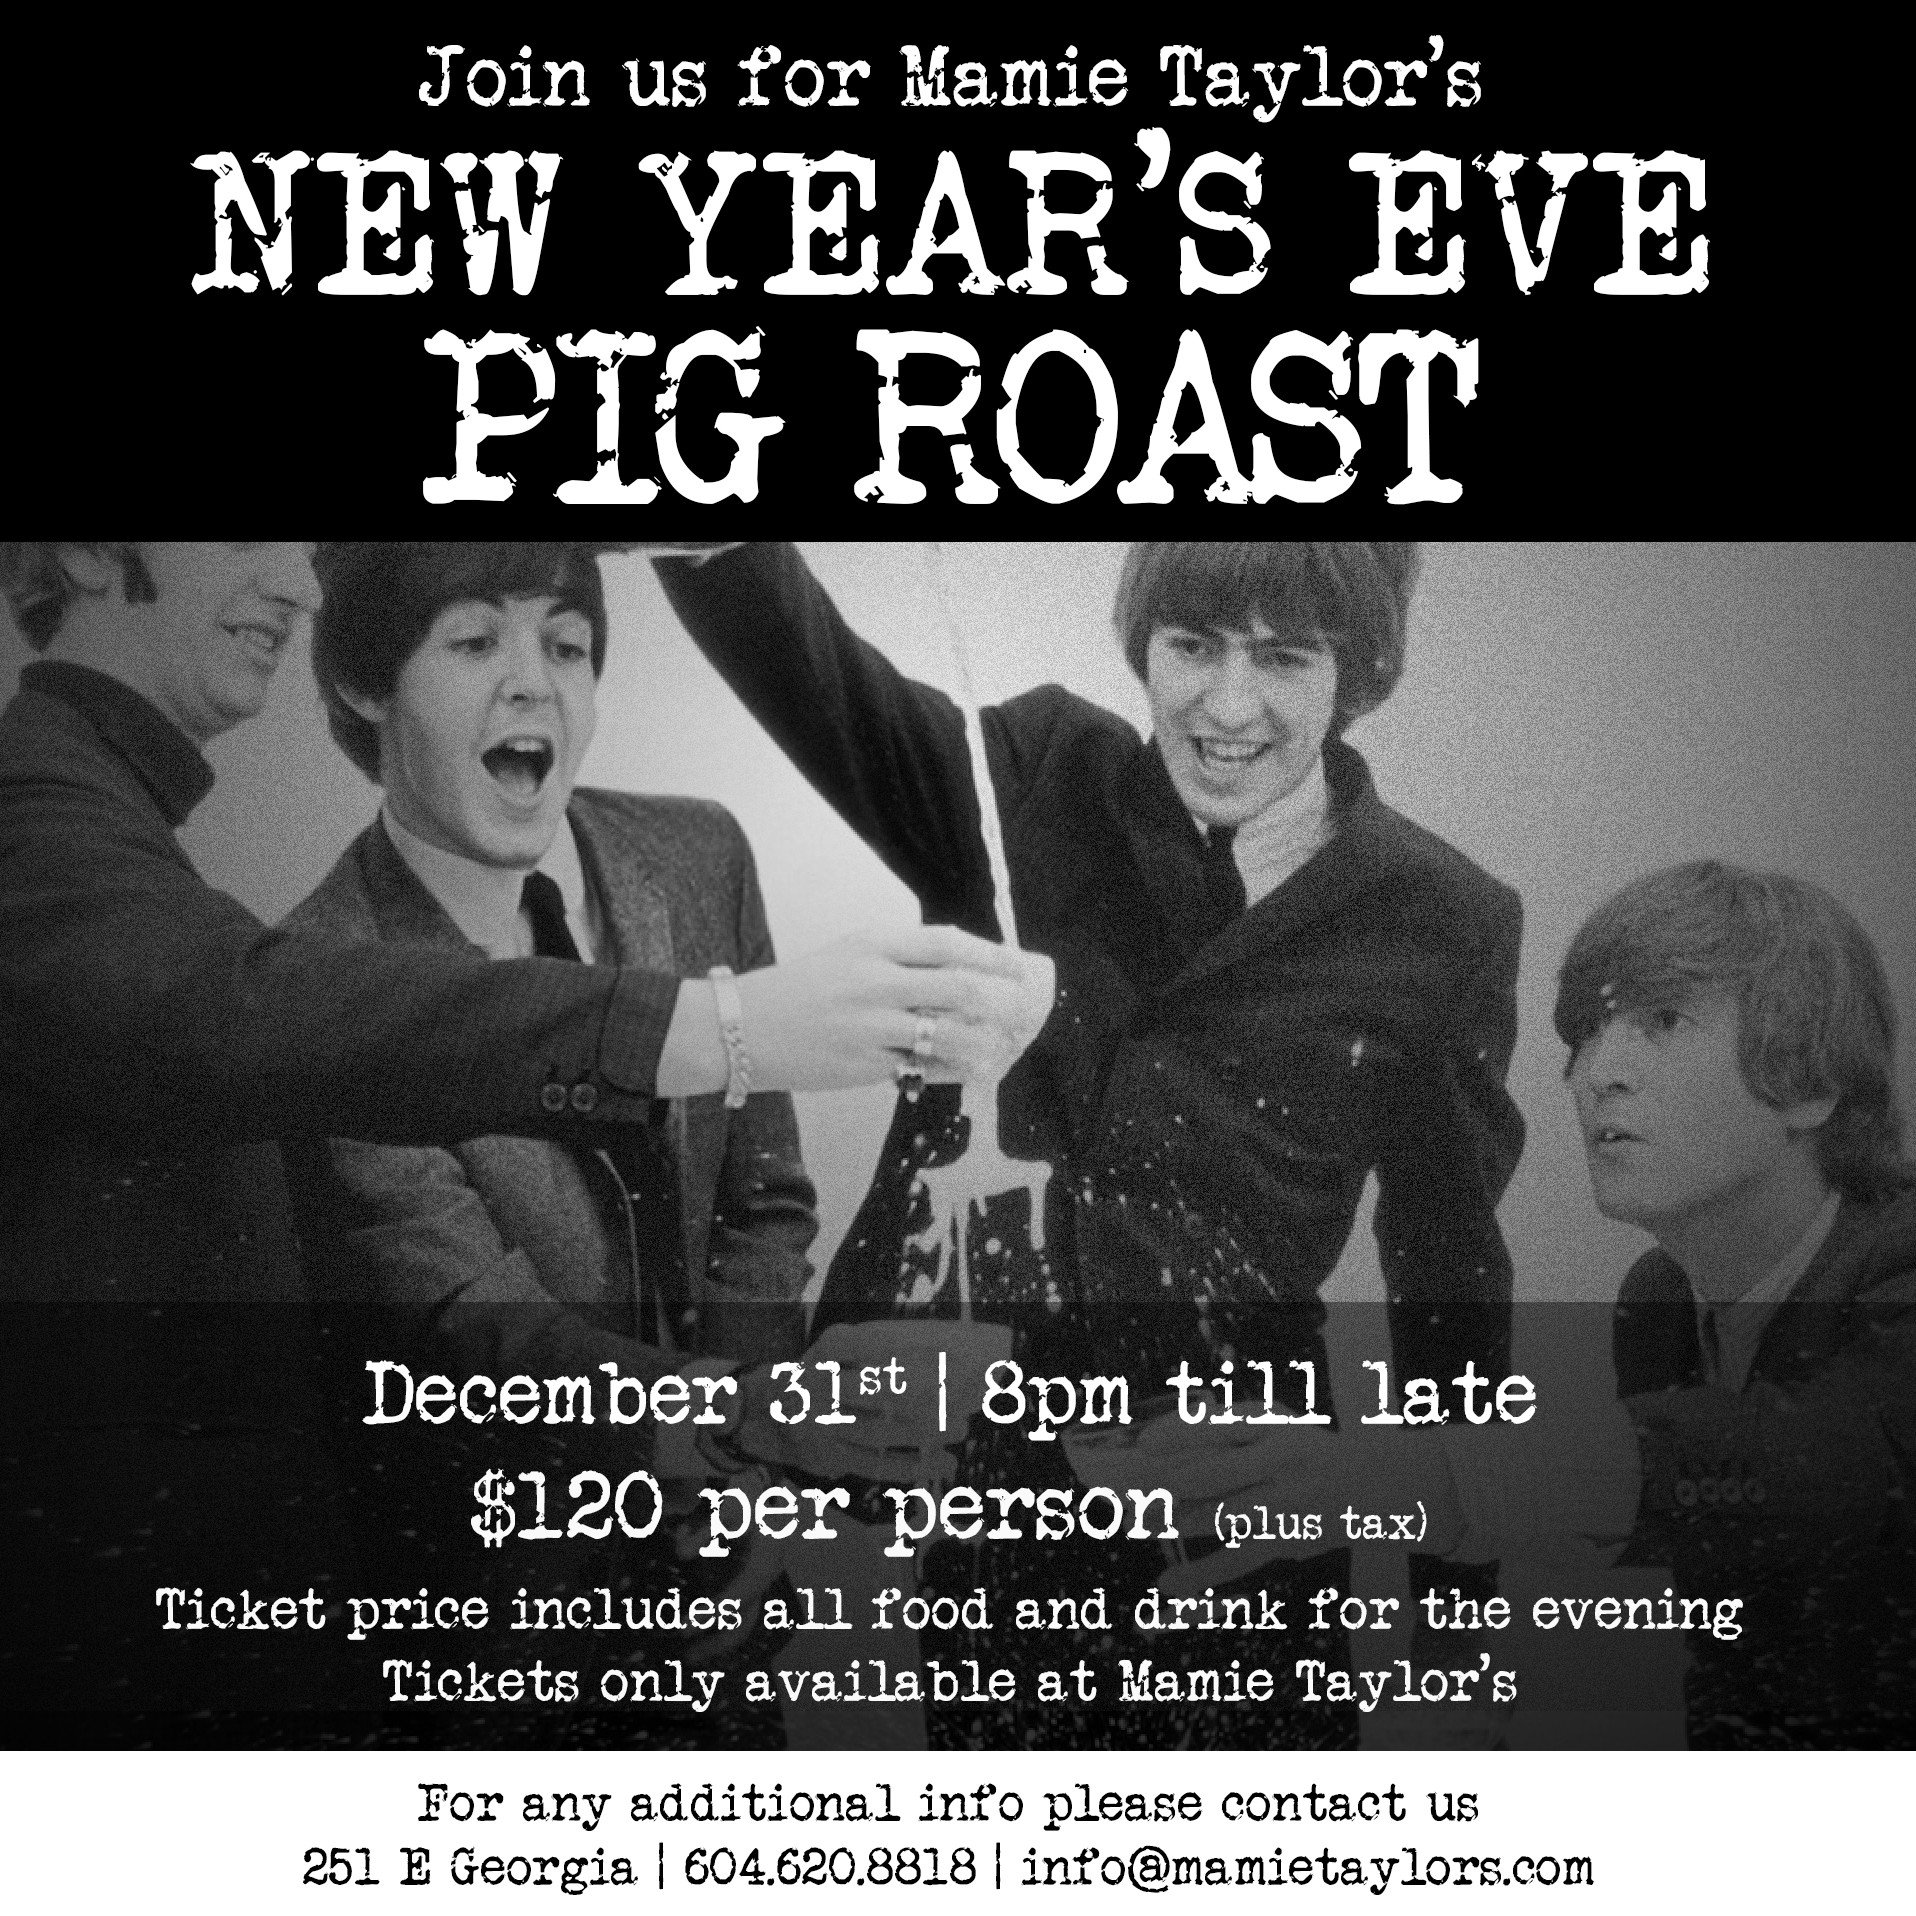 New Year's Eve Pig Roast